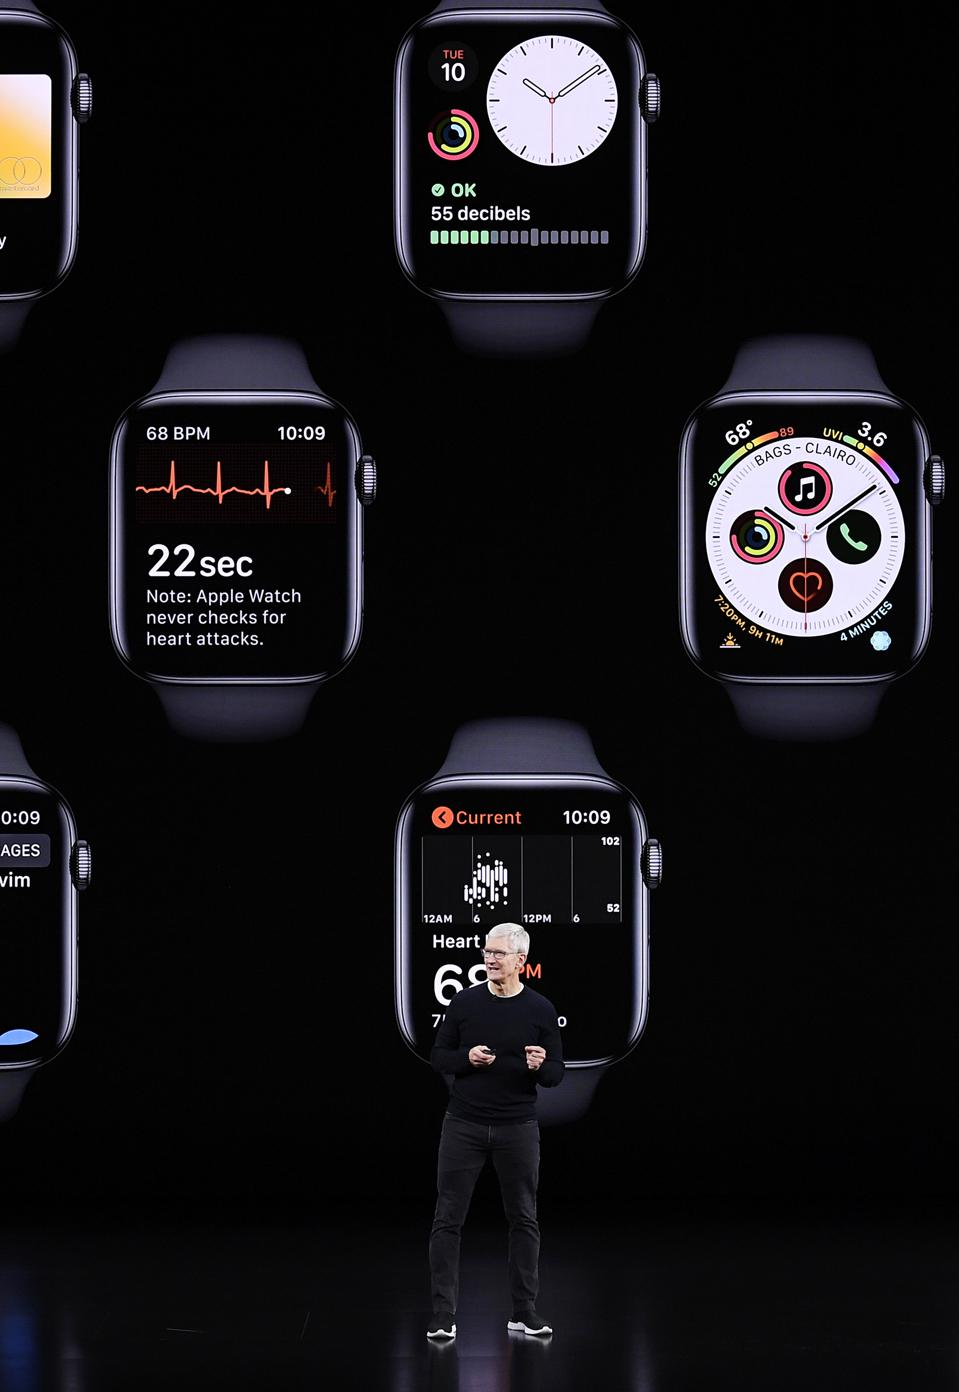 Apple Announced Three New Healthcare Studies And Now Is The Time To Ask Hard Questions